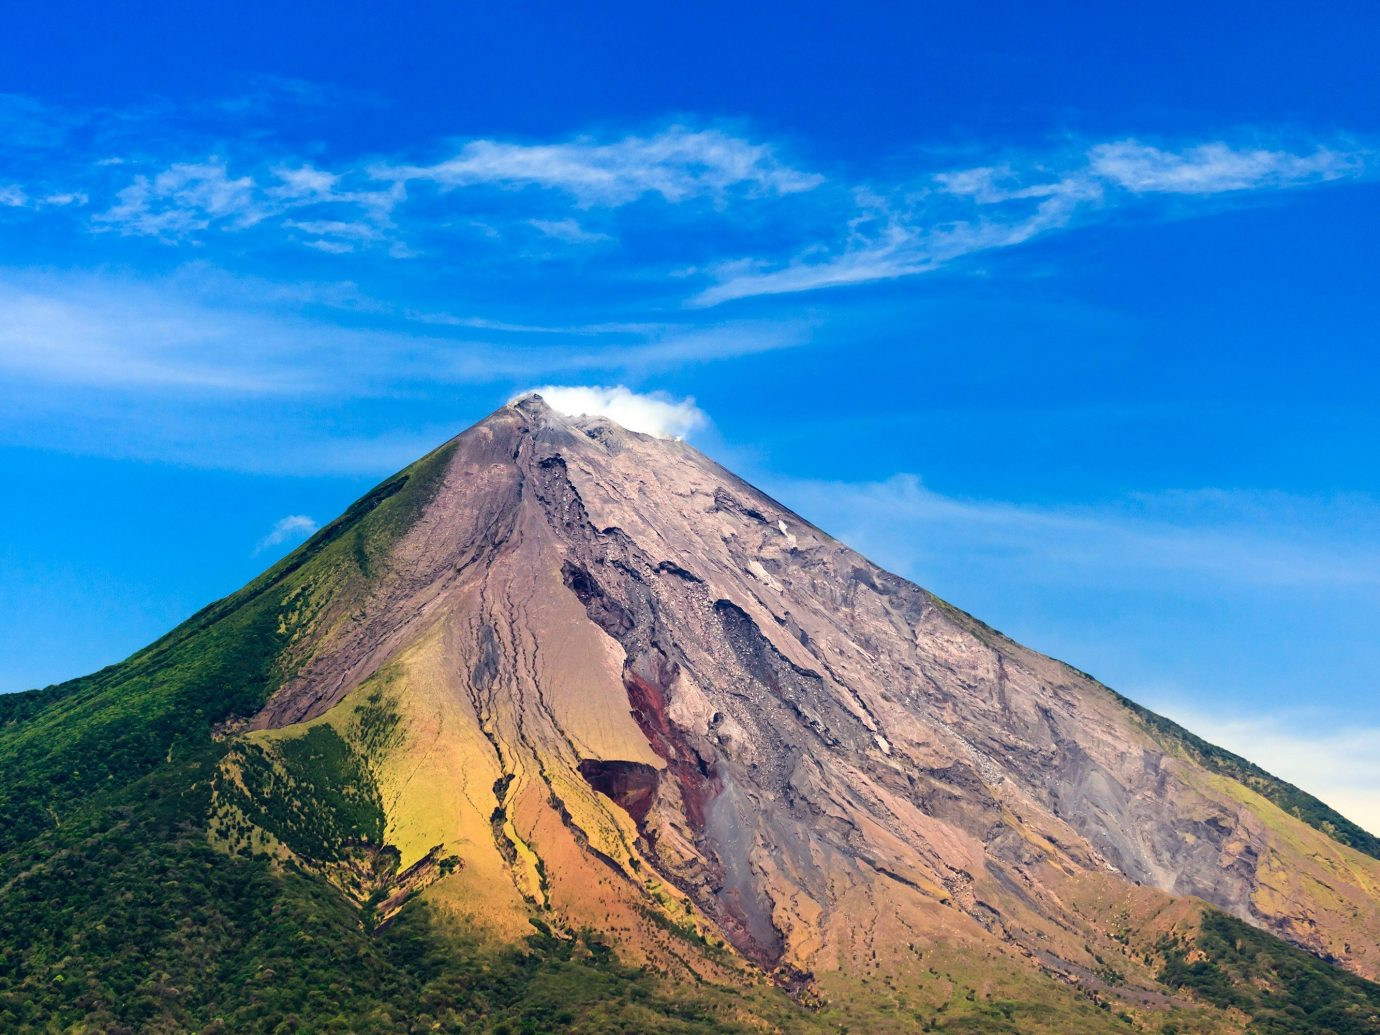 Trip Ideas mountain sky Nature outdoor mountainous landforms geographical feature landform stratovolcano ridge volcanic landform background mountain range fell hill plateau volcano shield volcano plain summit hillside clouds distance highland